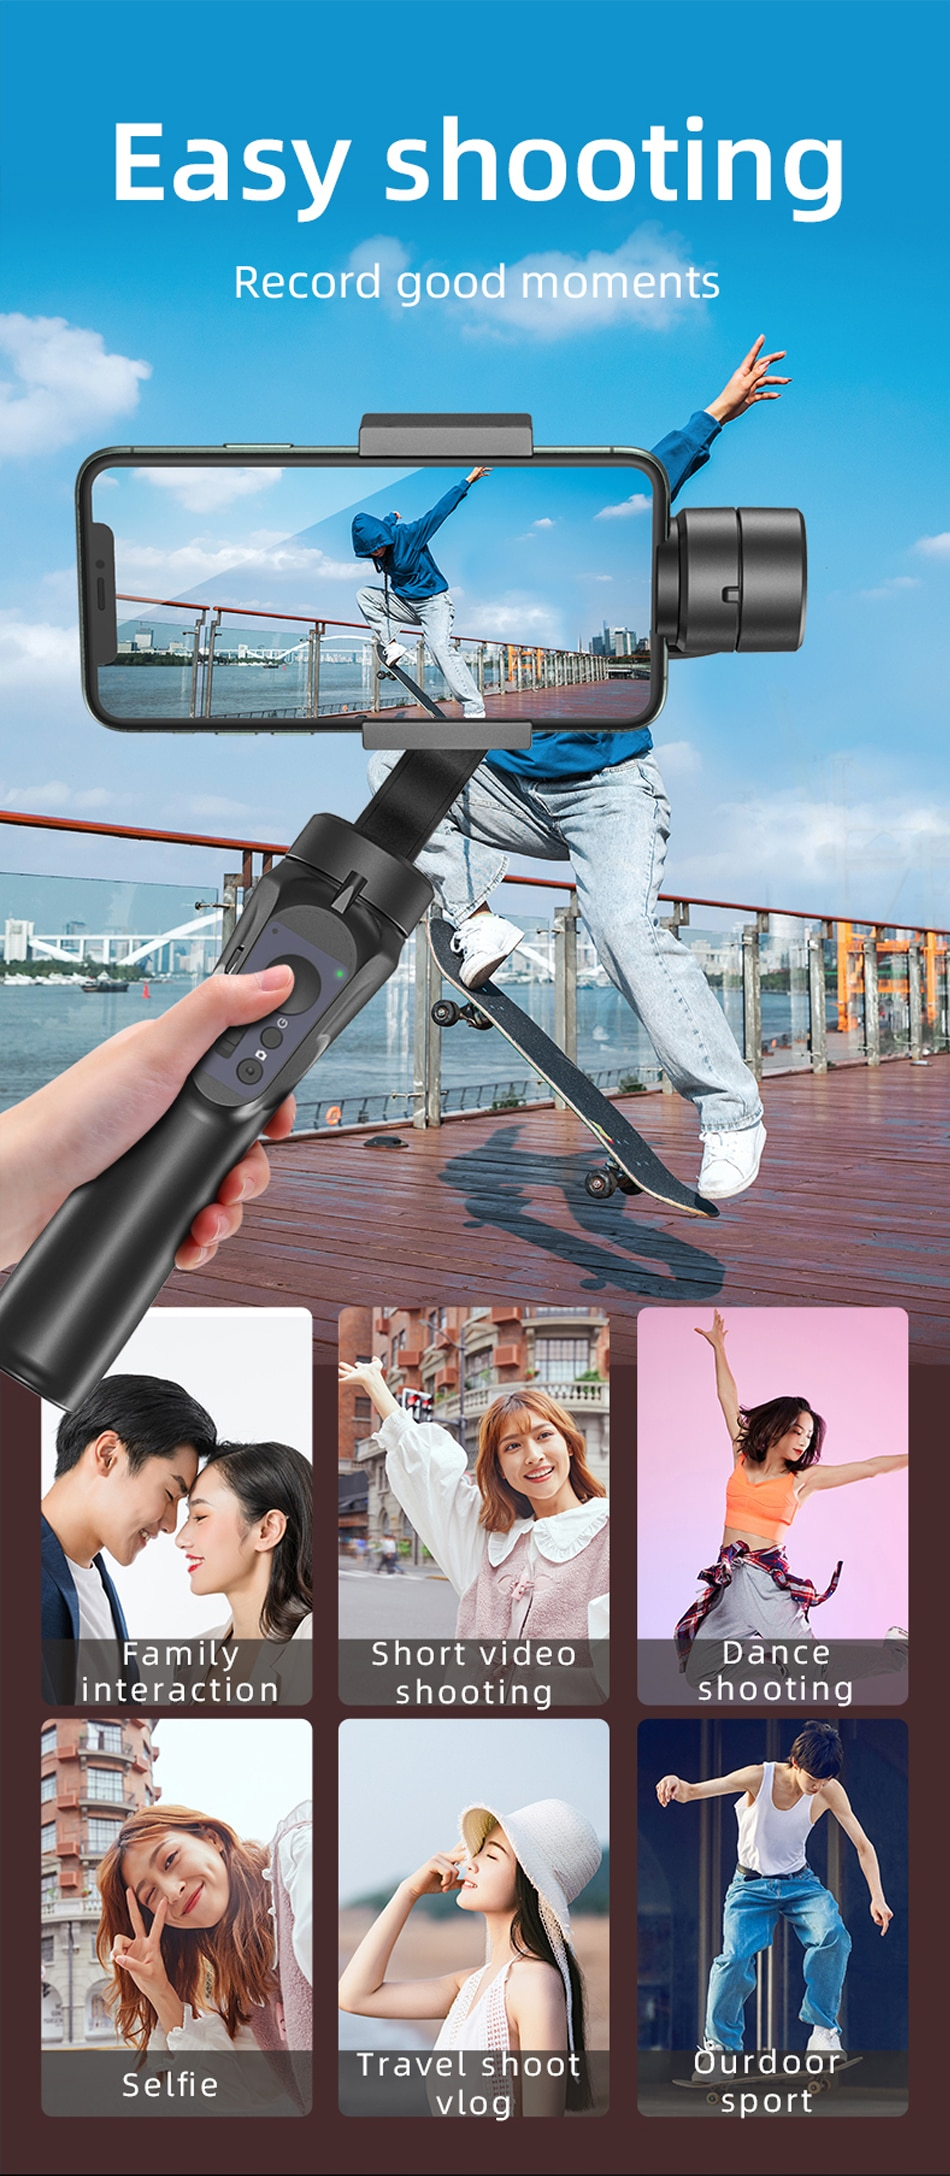 FCCWO H4 3 Axis USB Charging Video Record Support Universal Adjustable Direction Handheld Gimbal Smartphone Stabilizer Vlog Live